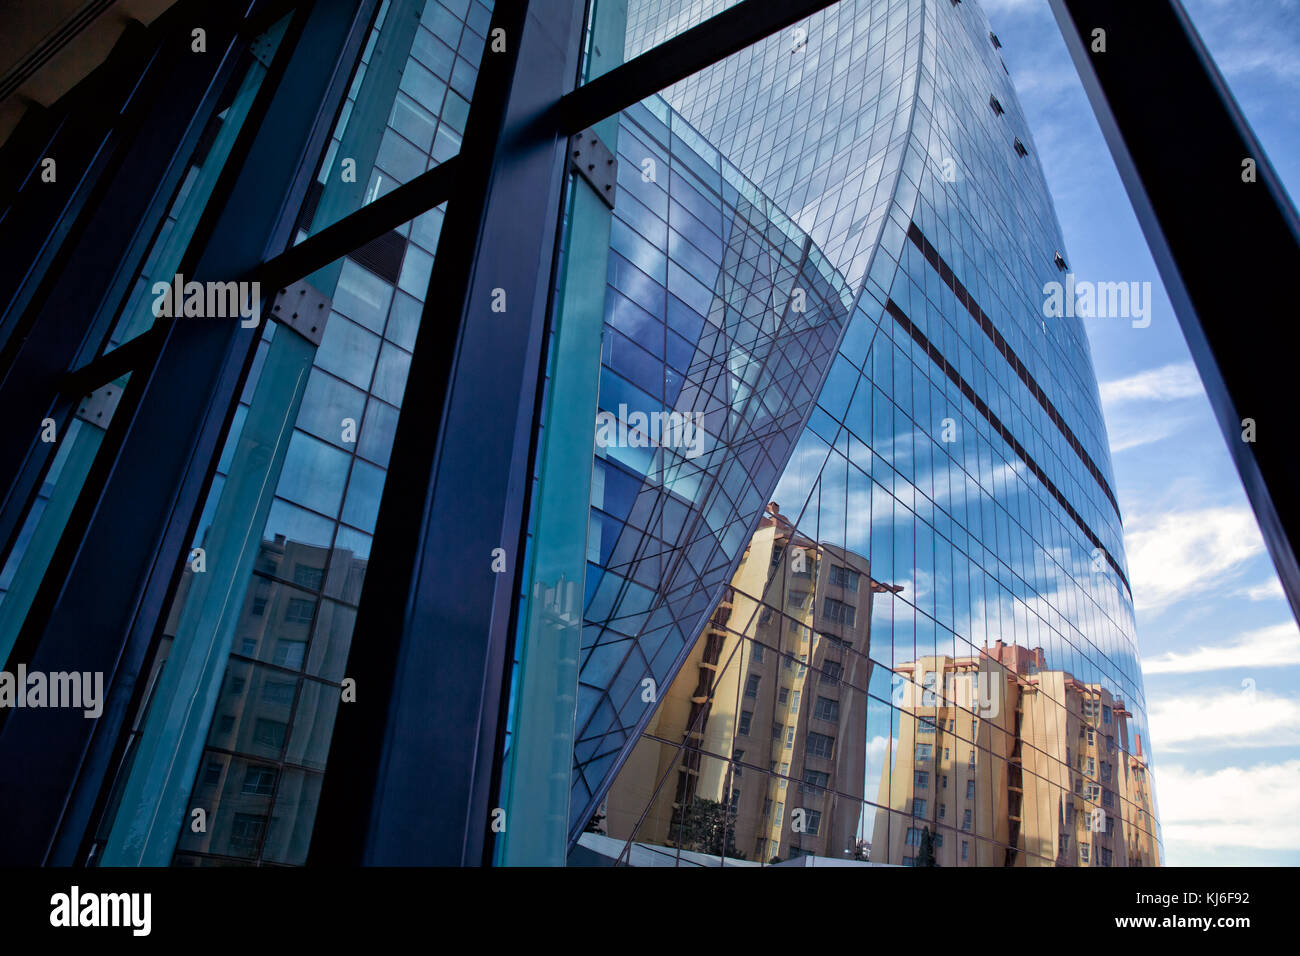 Disappearing Glass Office Buildings In The Morning Wide: High Rise Office Building Exterior Skyscraper Stock Photos